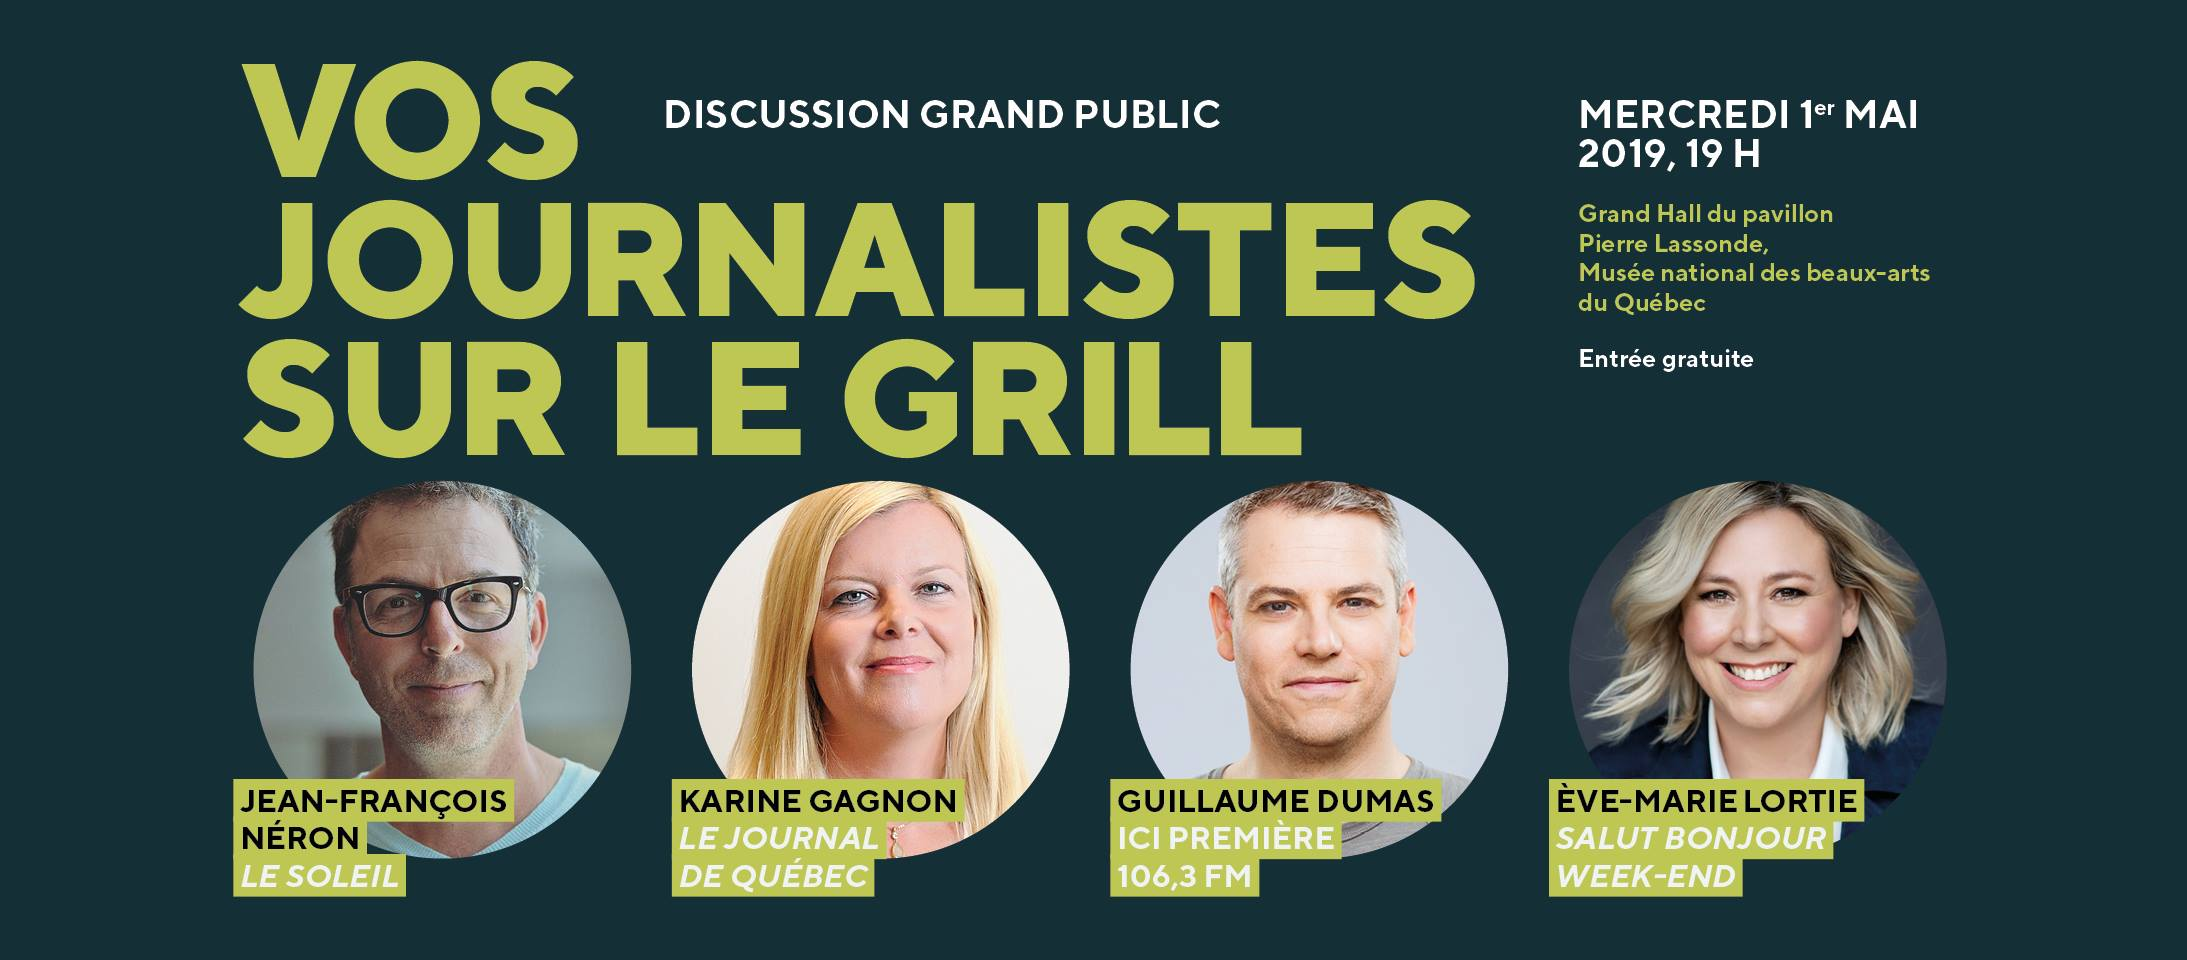 Discussion - Vos journalistes sur le grill